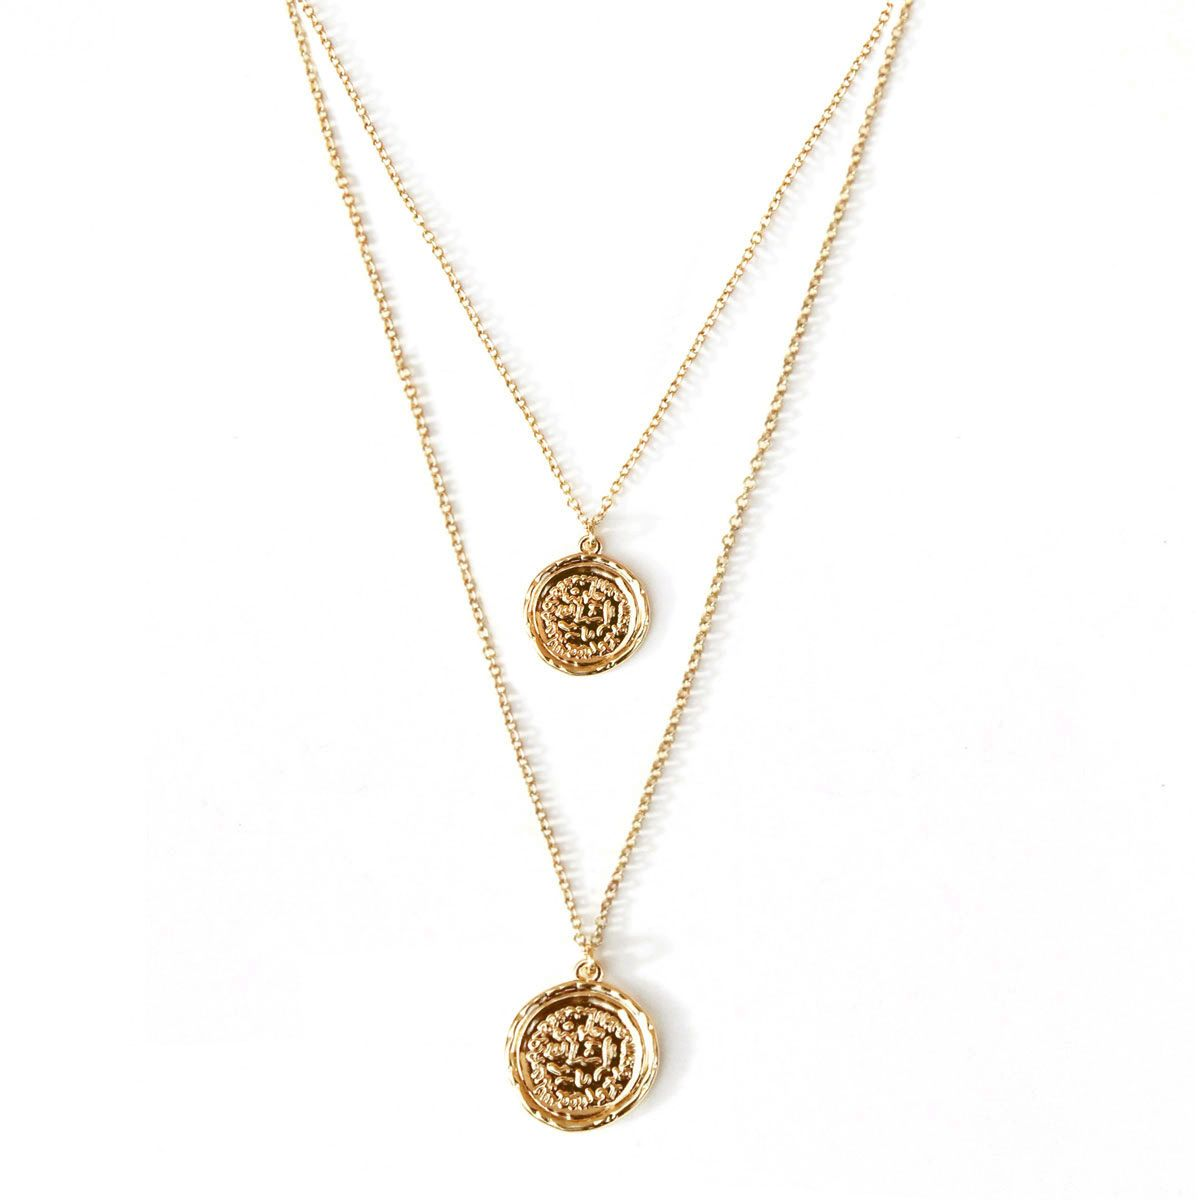 Double Coin Necklace Amber Sceats Designer Jewellery Coin Necklace Necklace Jewelry Design